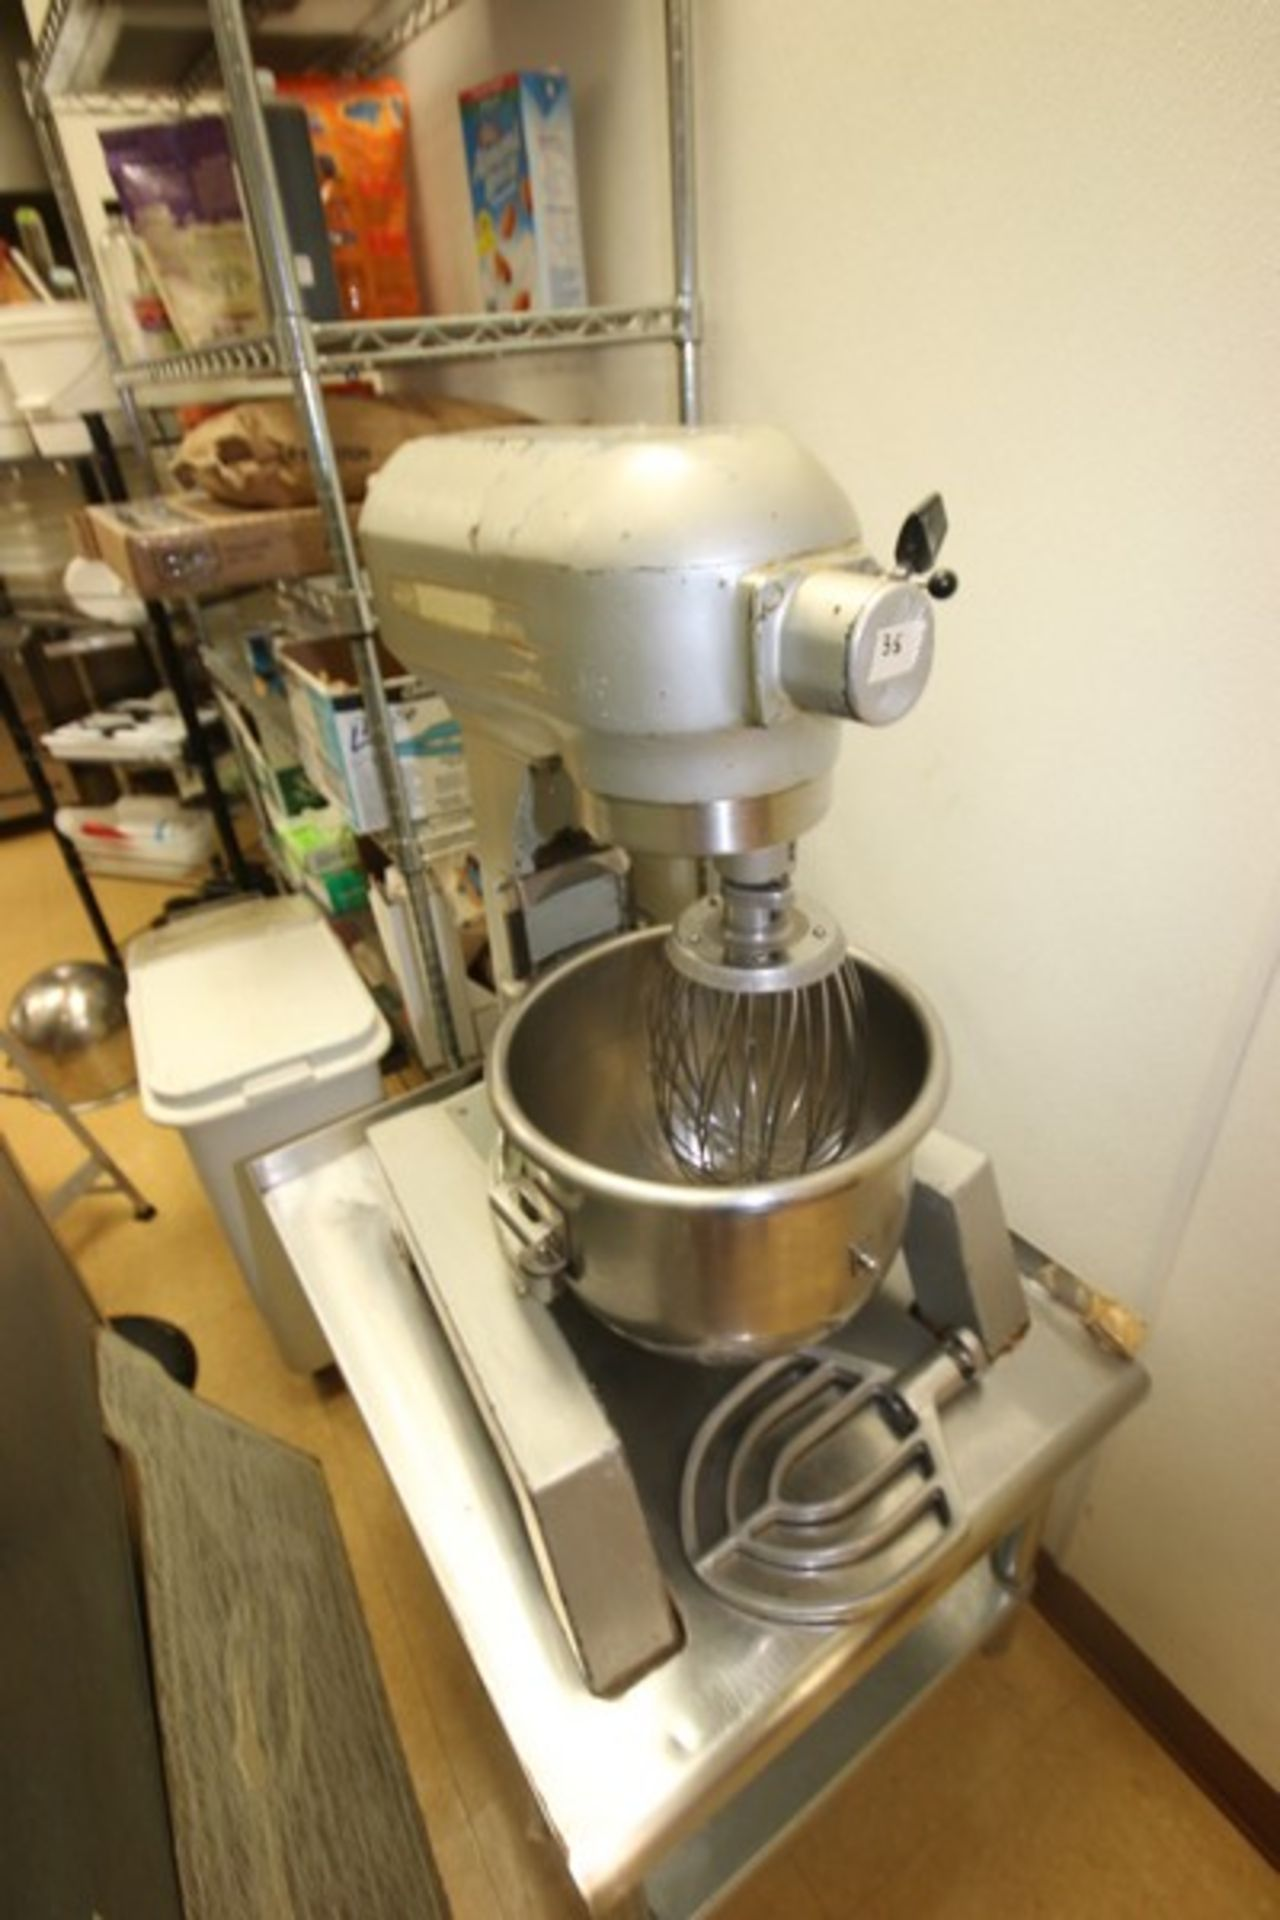 Hobart Mixer, M/N A300F, S/N 11-306-736, 115 Volts, 1 Phase, with S/S Mixing Bowl, S/S Whip & Flat - Image 2 of 7